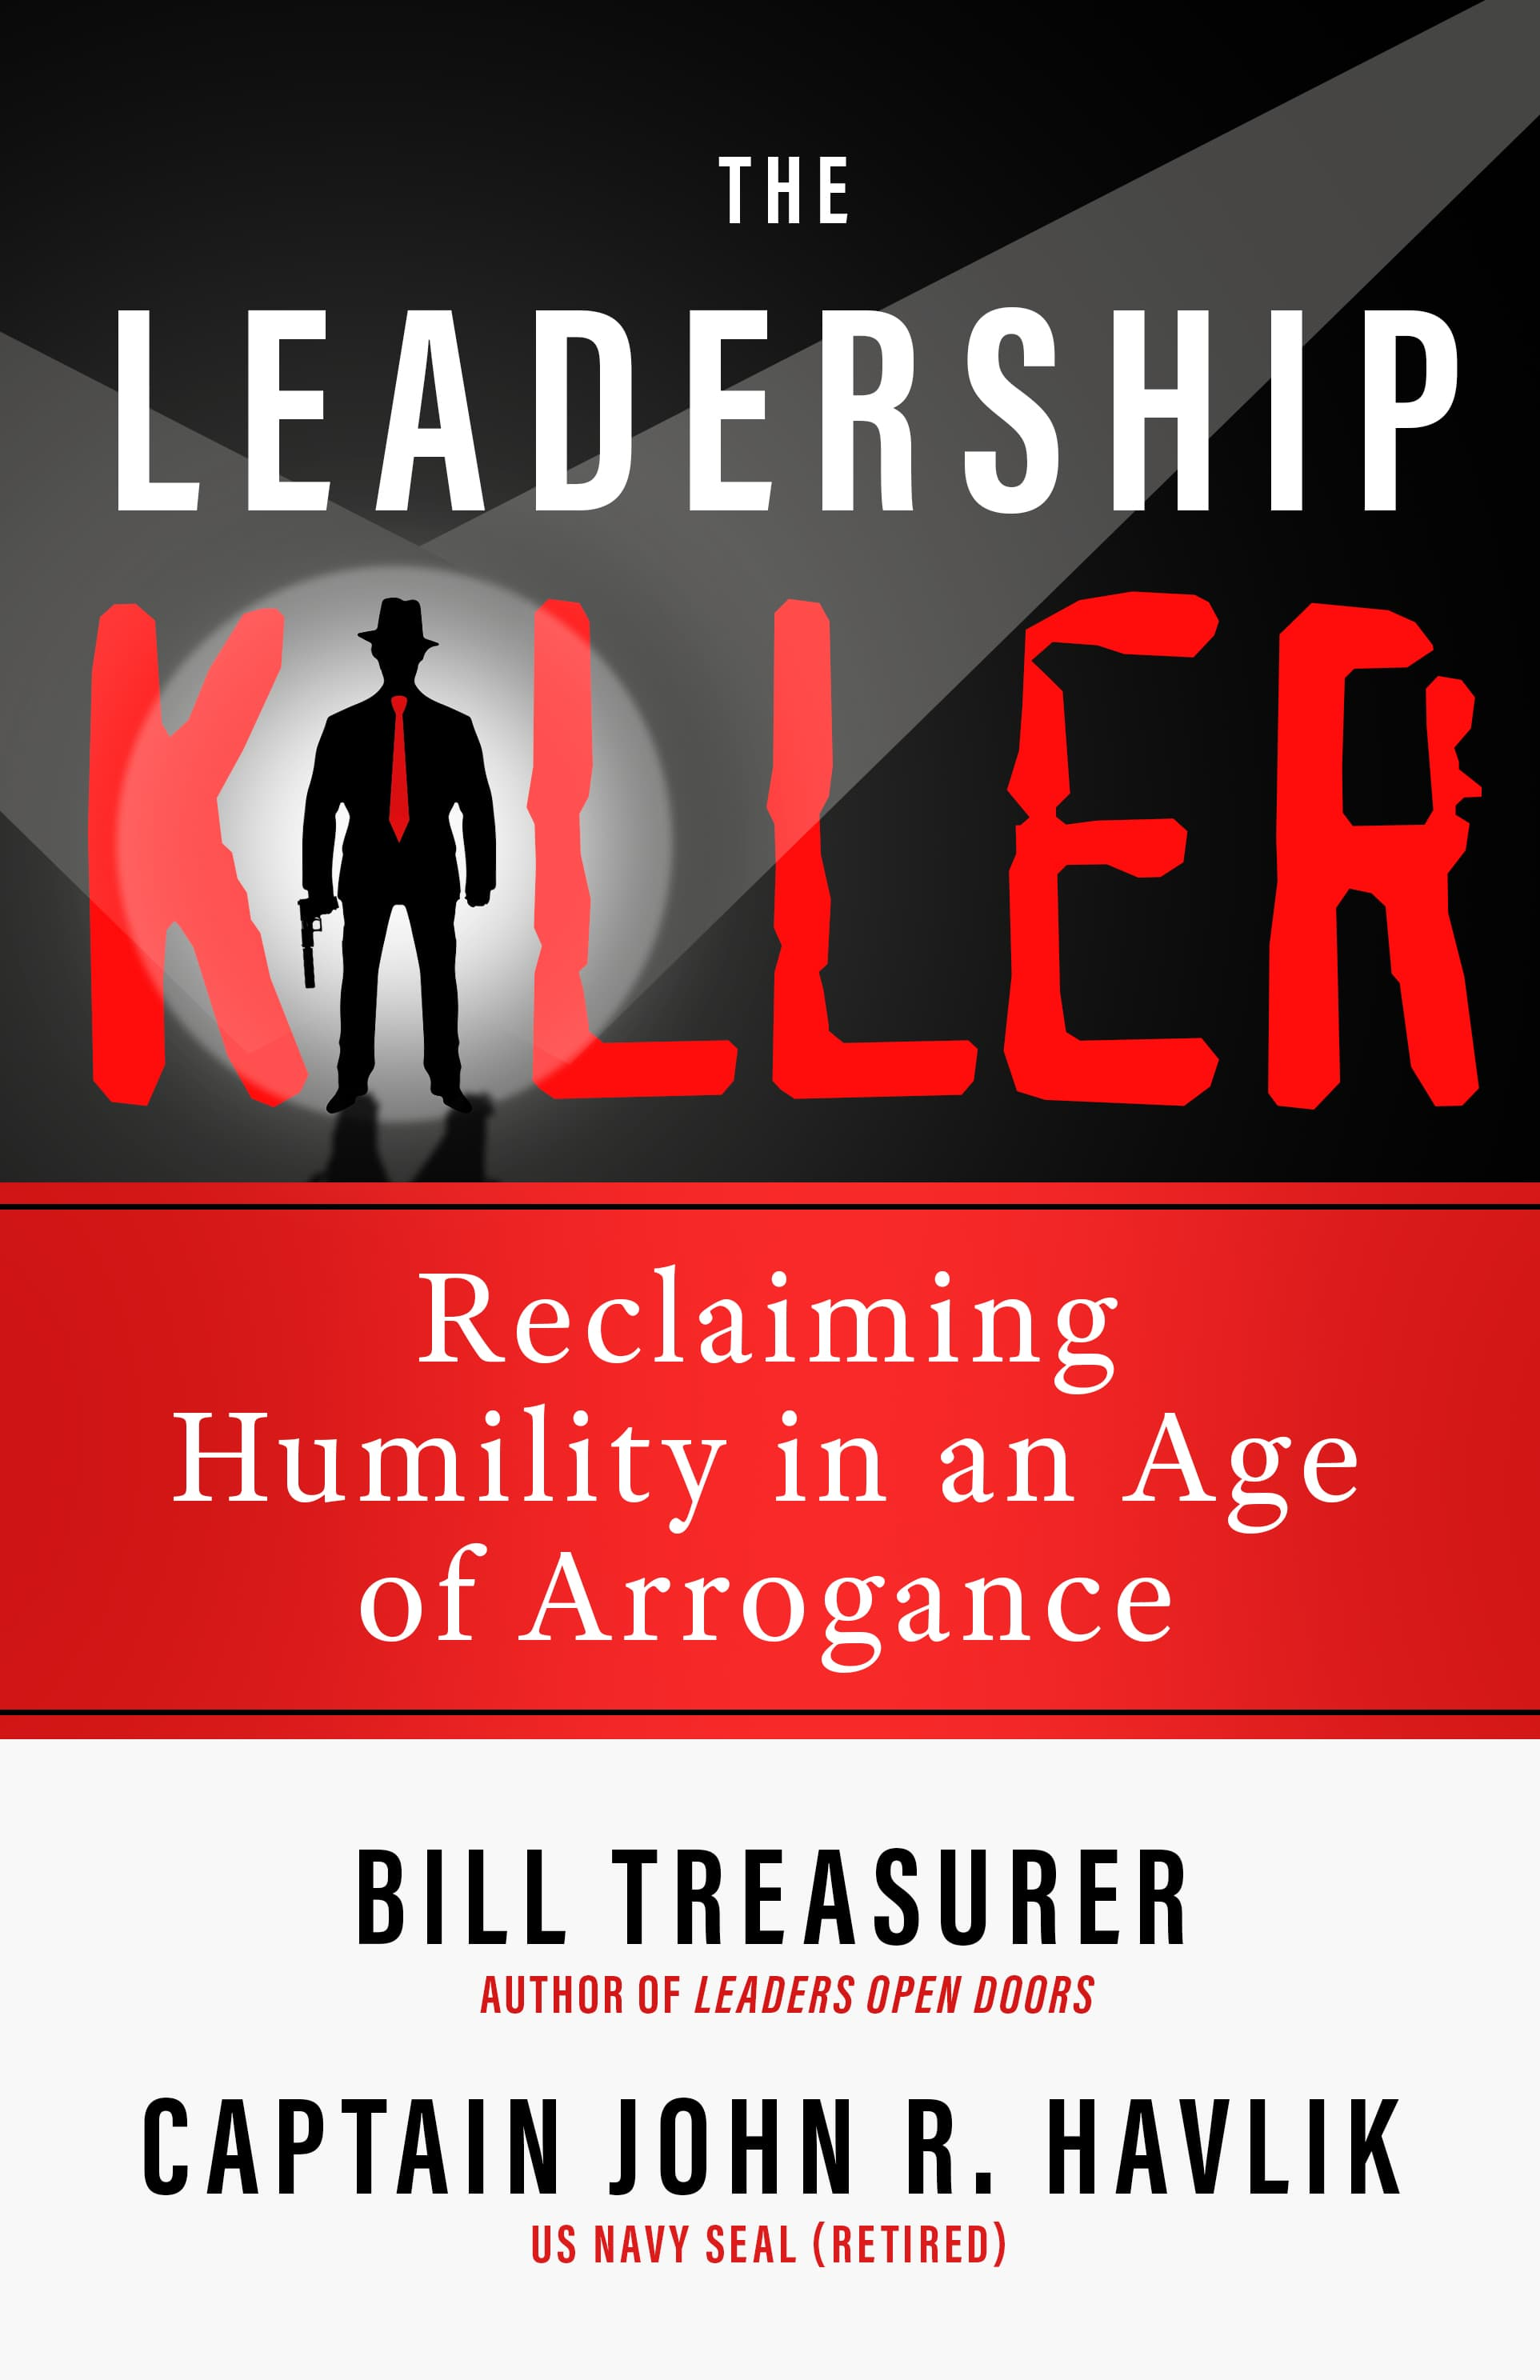 Download The Leadership Killer